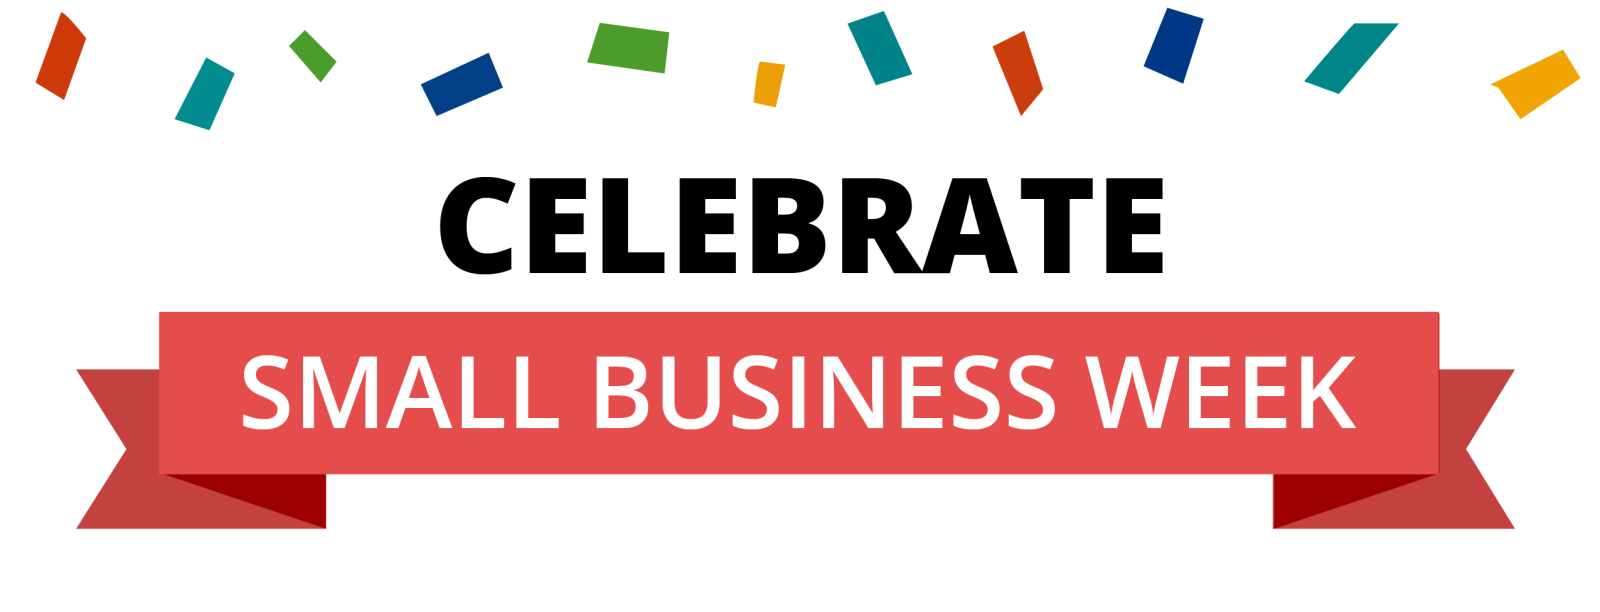 Celebrate Small Business Week